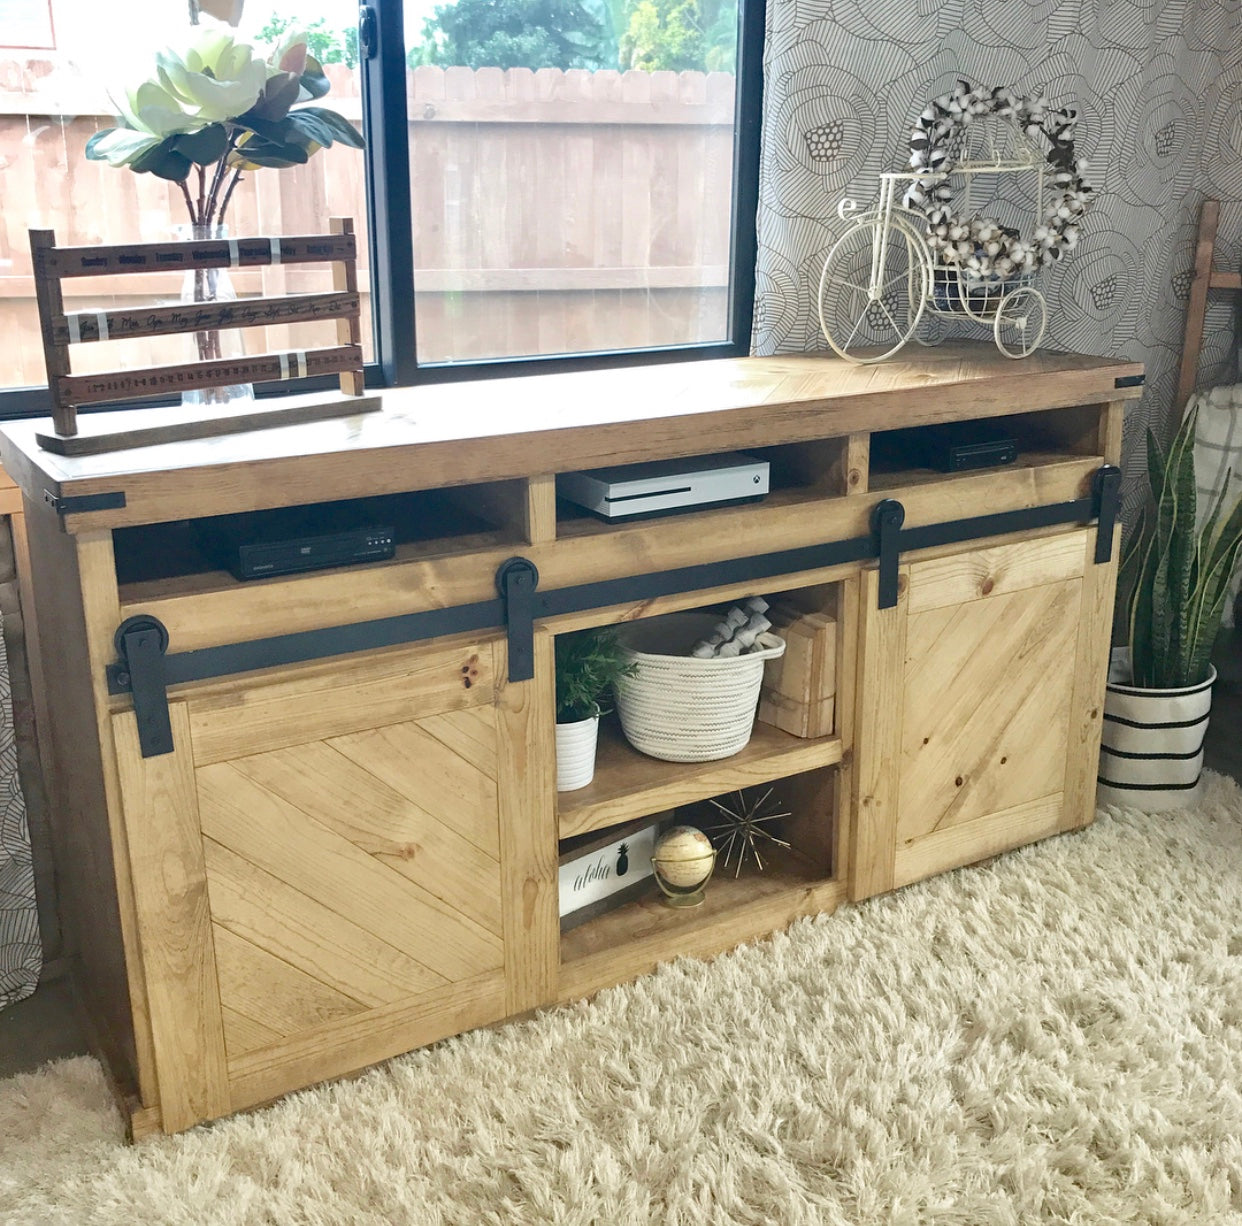 Handmade Haven Diy Blog For Woodworking Plans And Projects